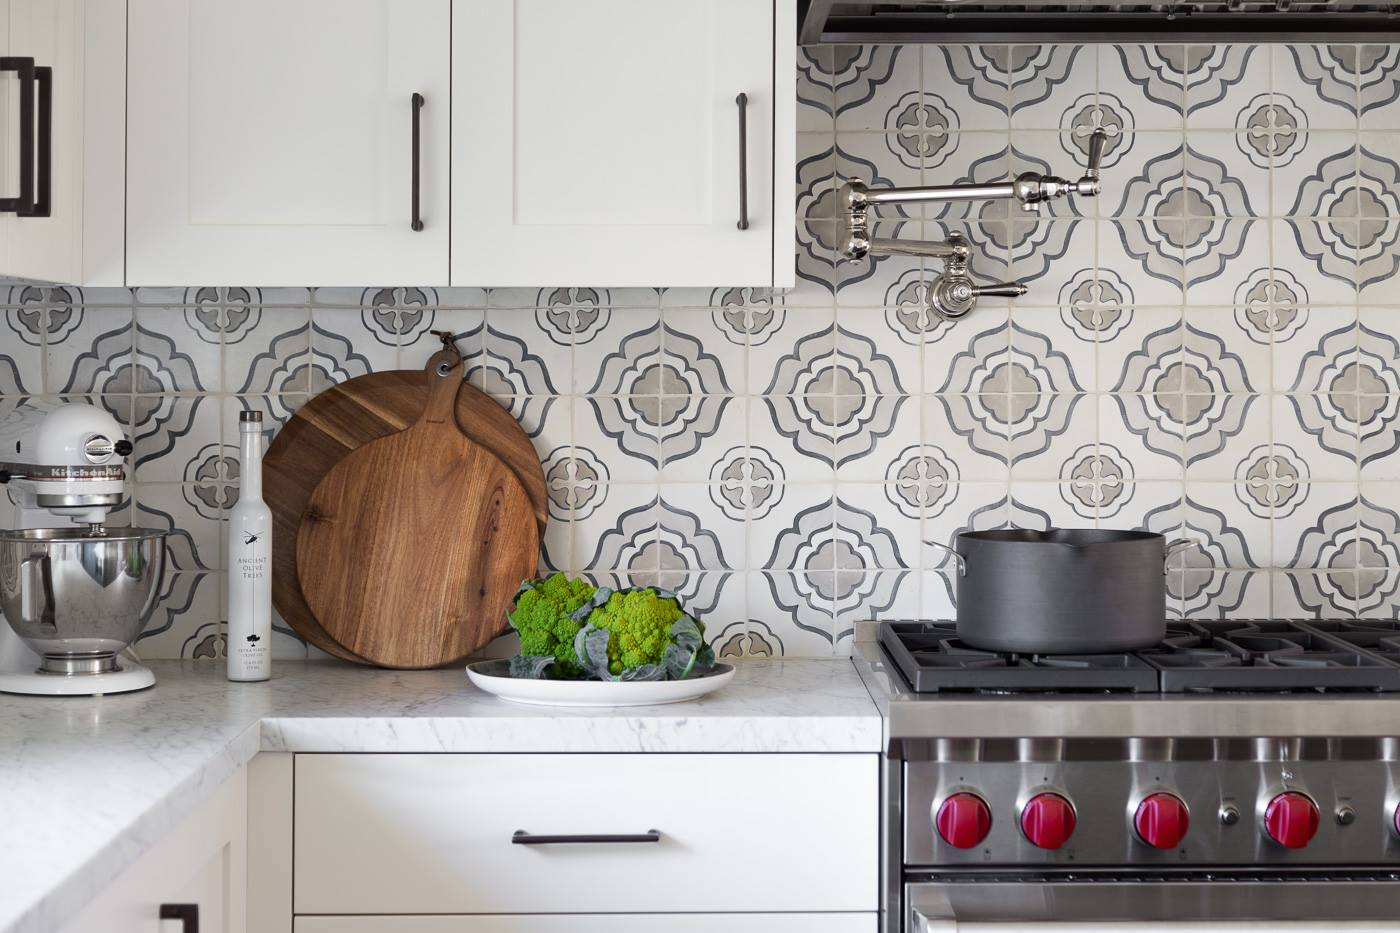 10 Backsplash Ideas to Make a Statement With Your Kitchen ...